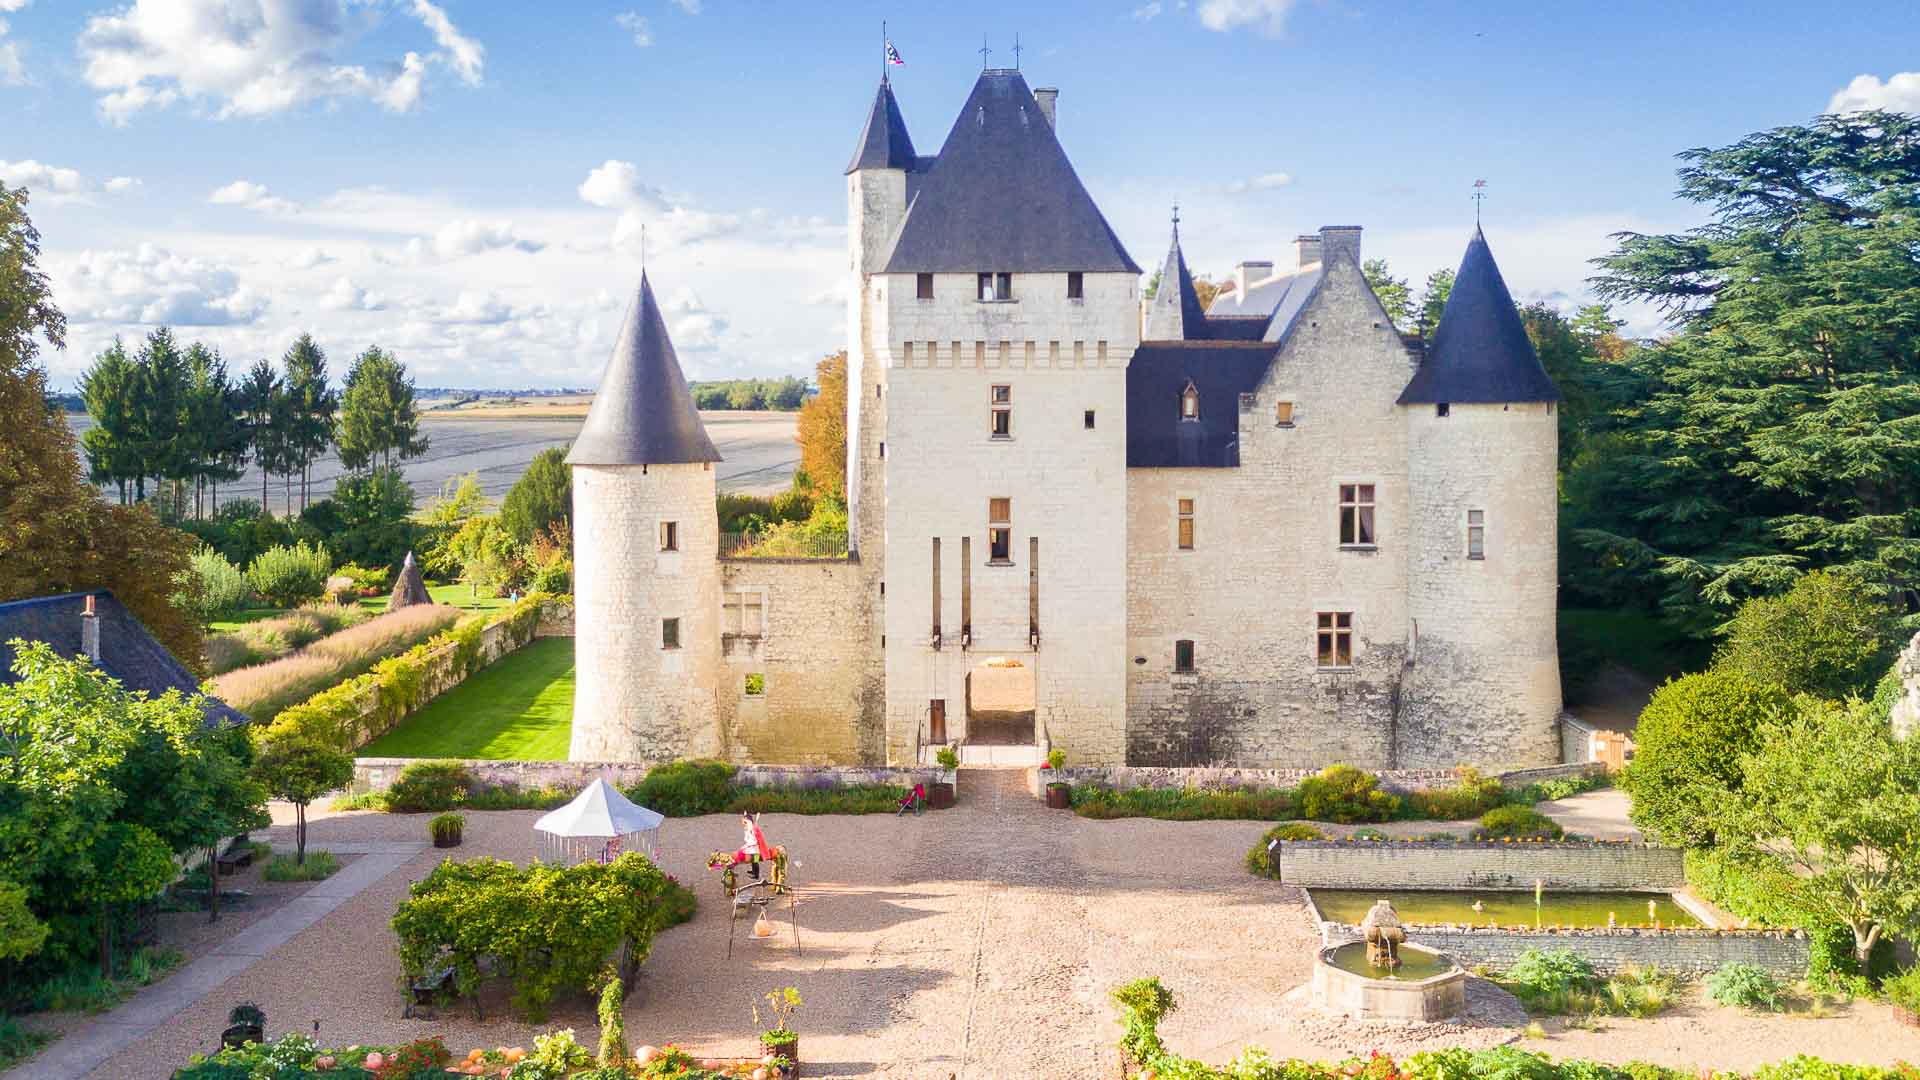 The Rivau Chateau and its gardens - Loire Valley